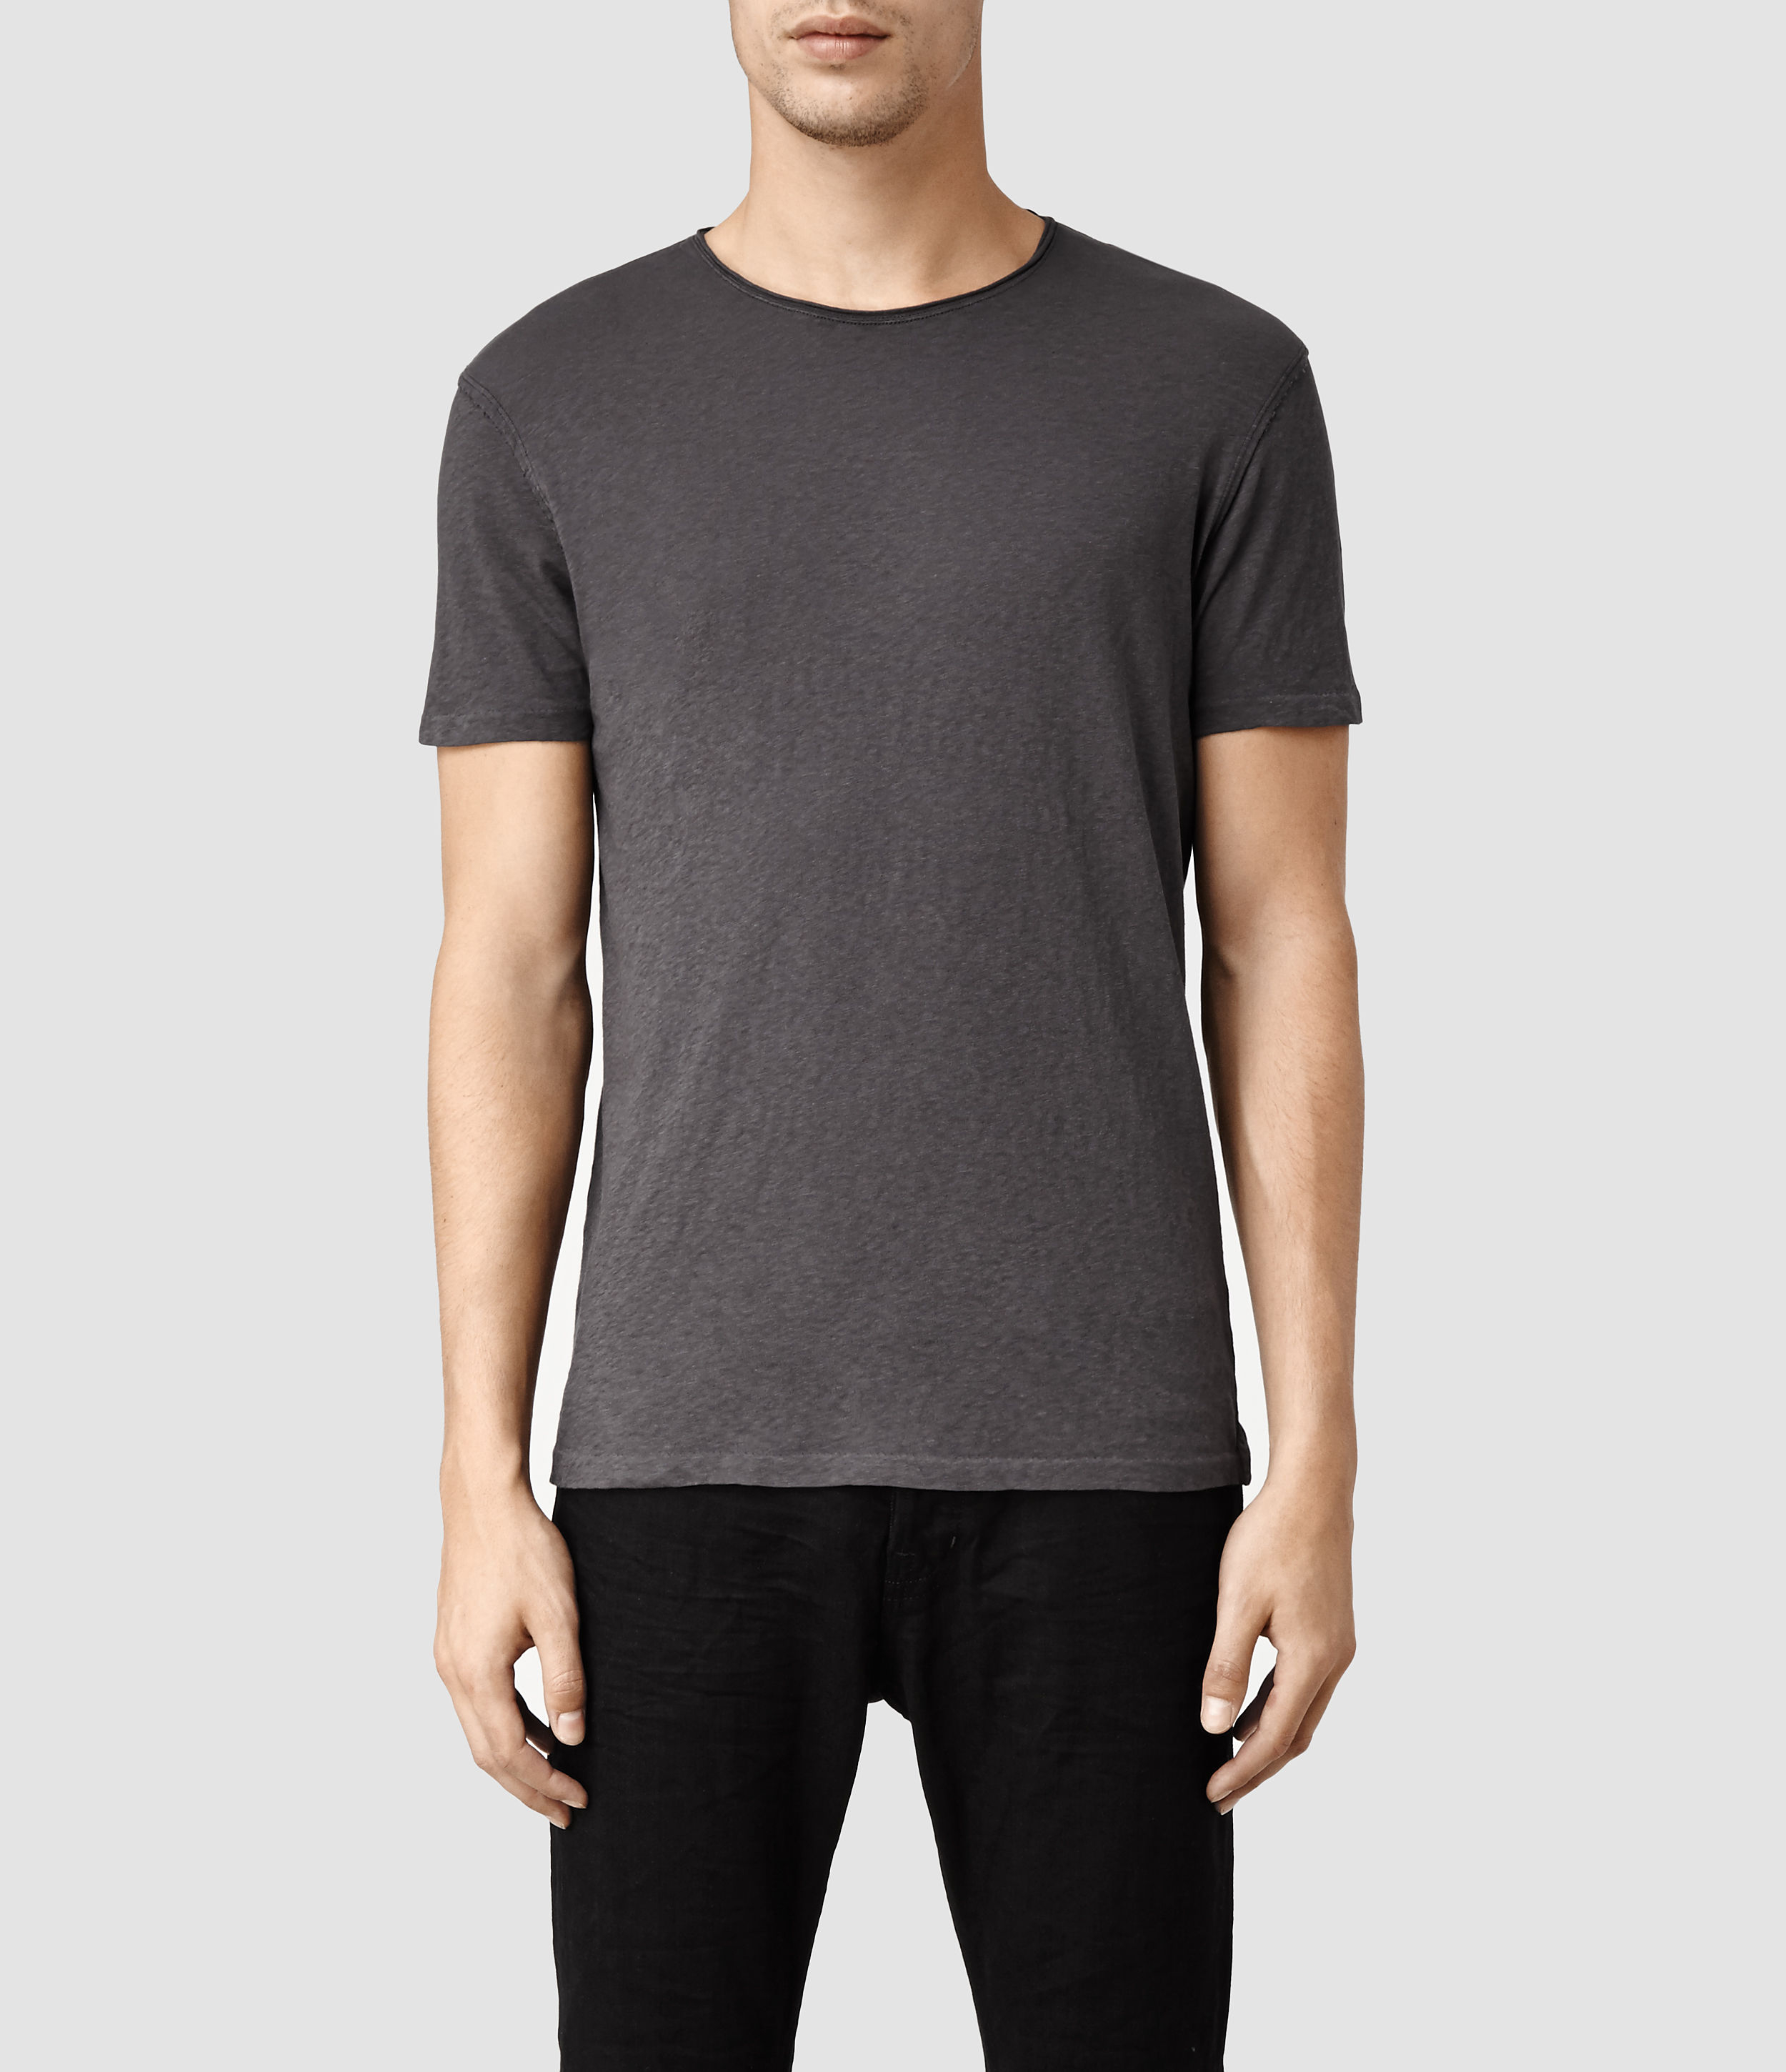 84ae27b807 AllSaints Figure Crew T-shirt in Black for Men - Lyst